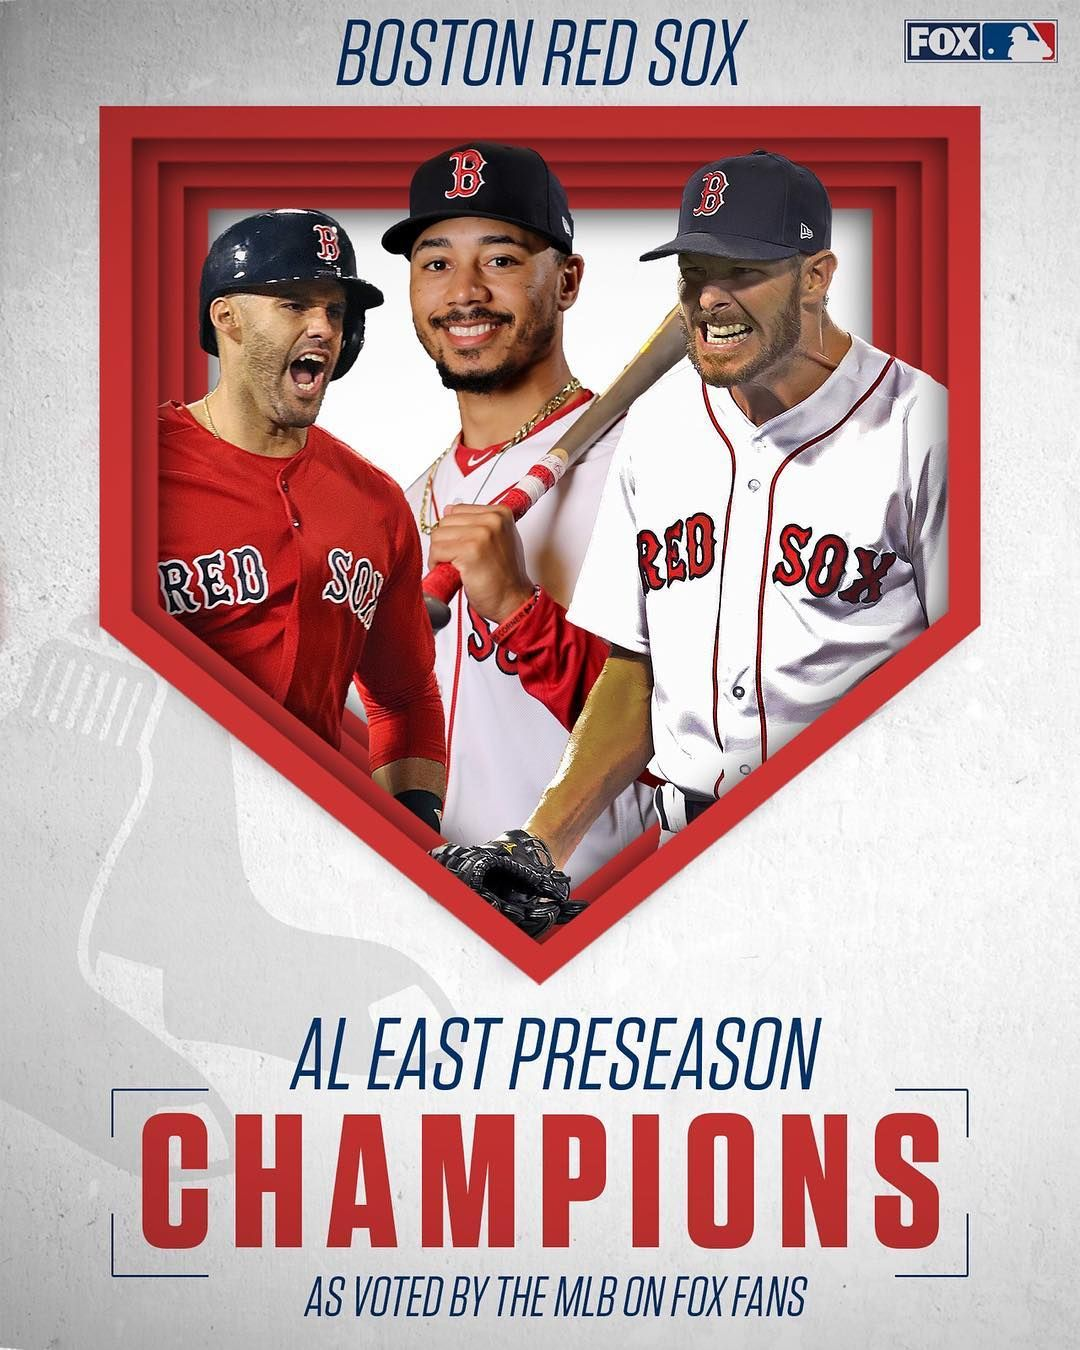 Mlb On Fox On Instagram The World Champion Boston Red Sox Will Win The Al East In 2019 As Voted On By The Mlb On Fox Fans Red Sox Boston Red